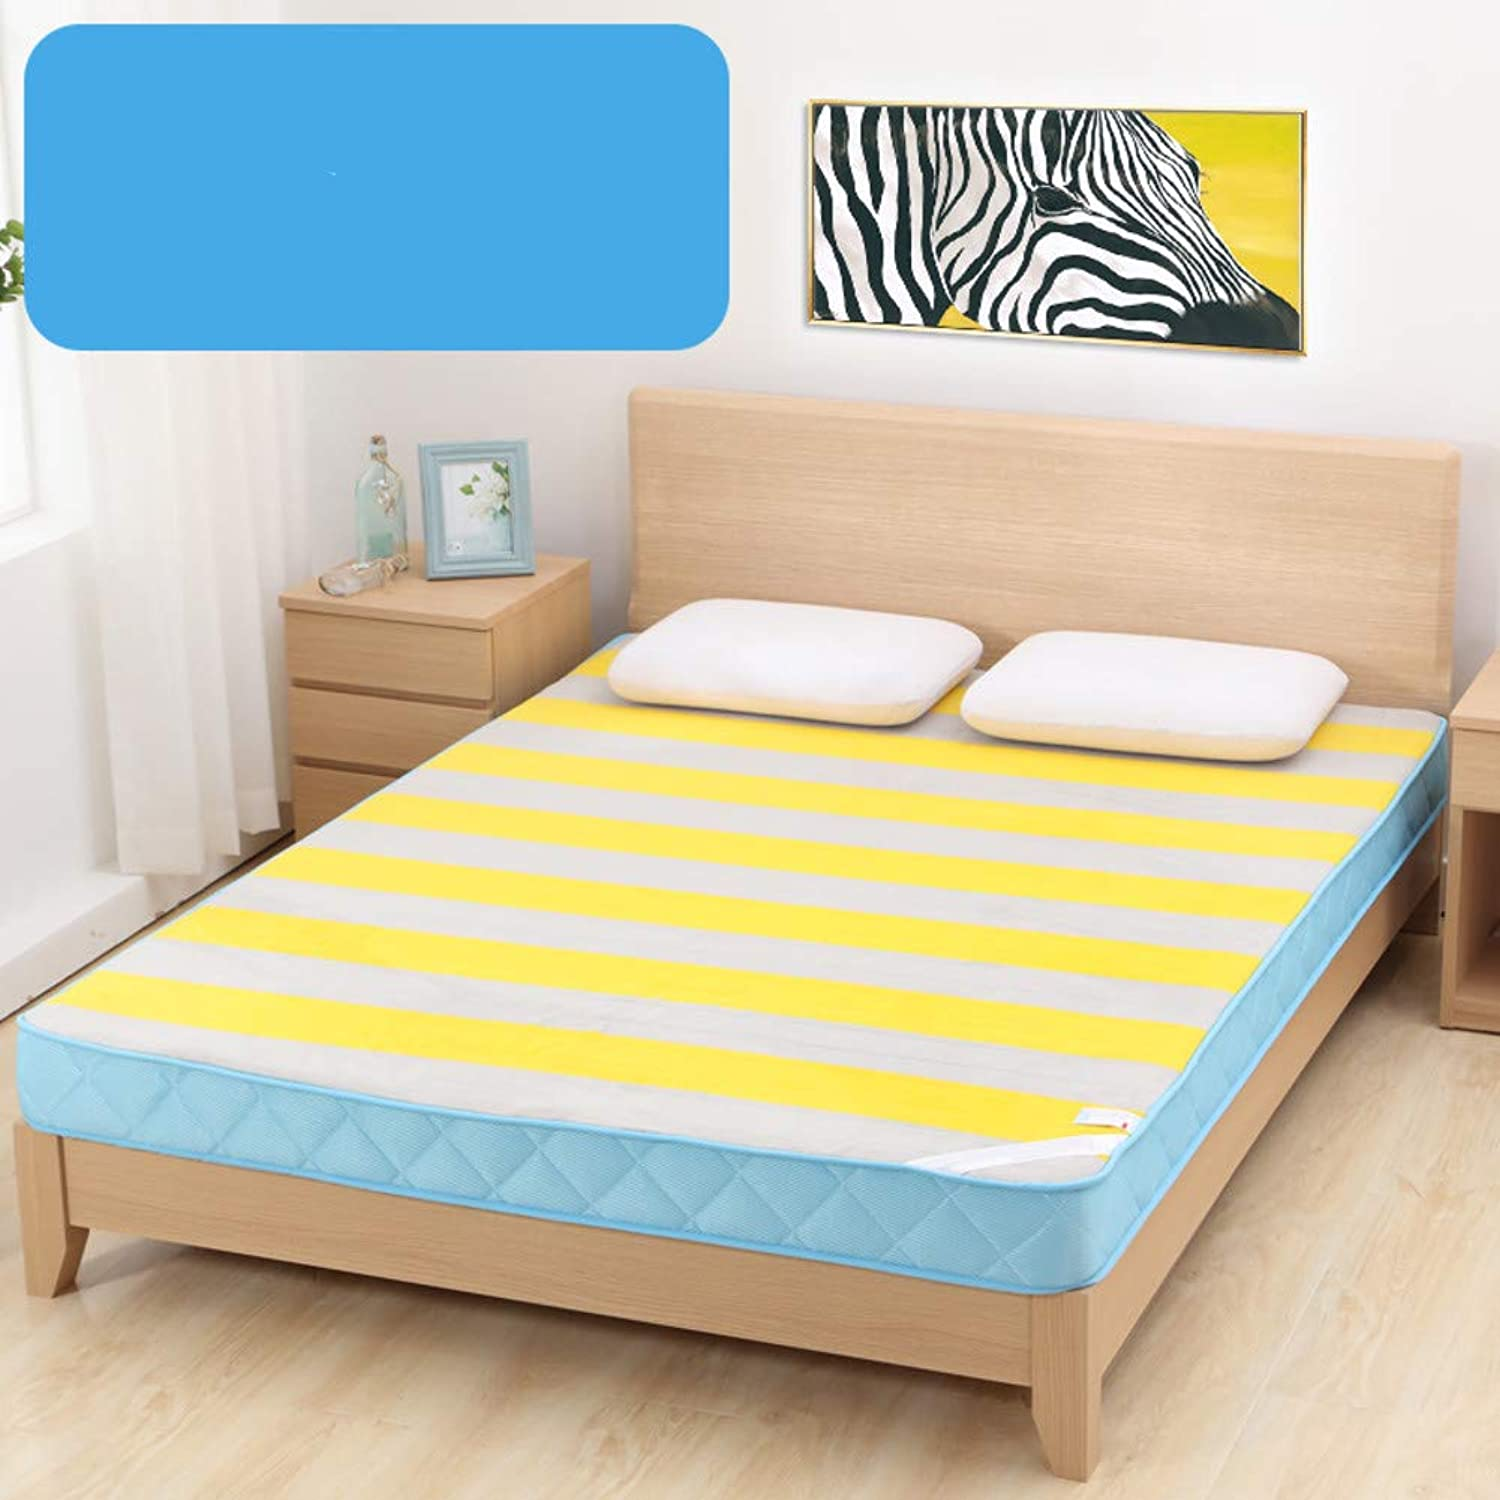 Student Dormitory Tatami Cushion,Tatami Mattress,Cushion,Padded Single Comfortable Multi-Function Floor Breathable-b 90x190cm(35x75inch)